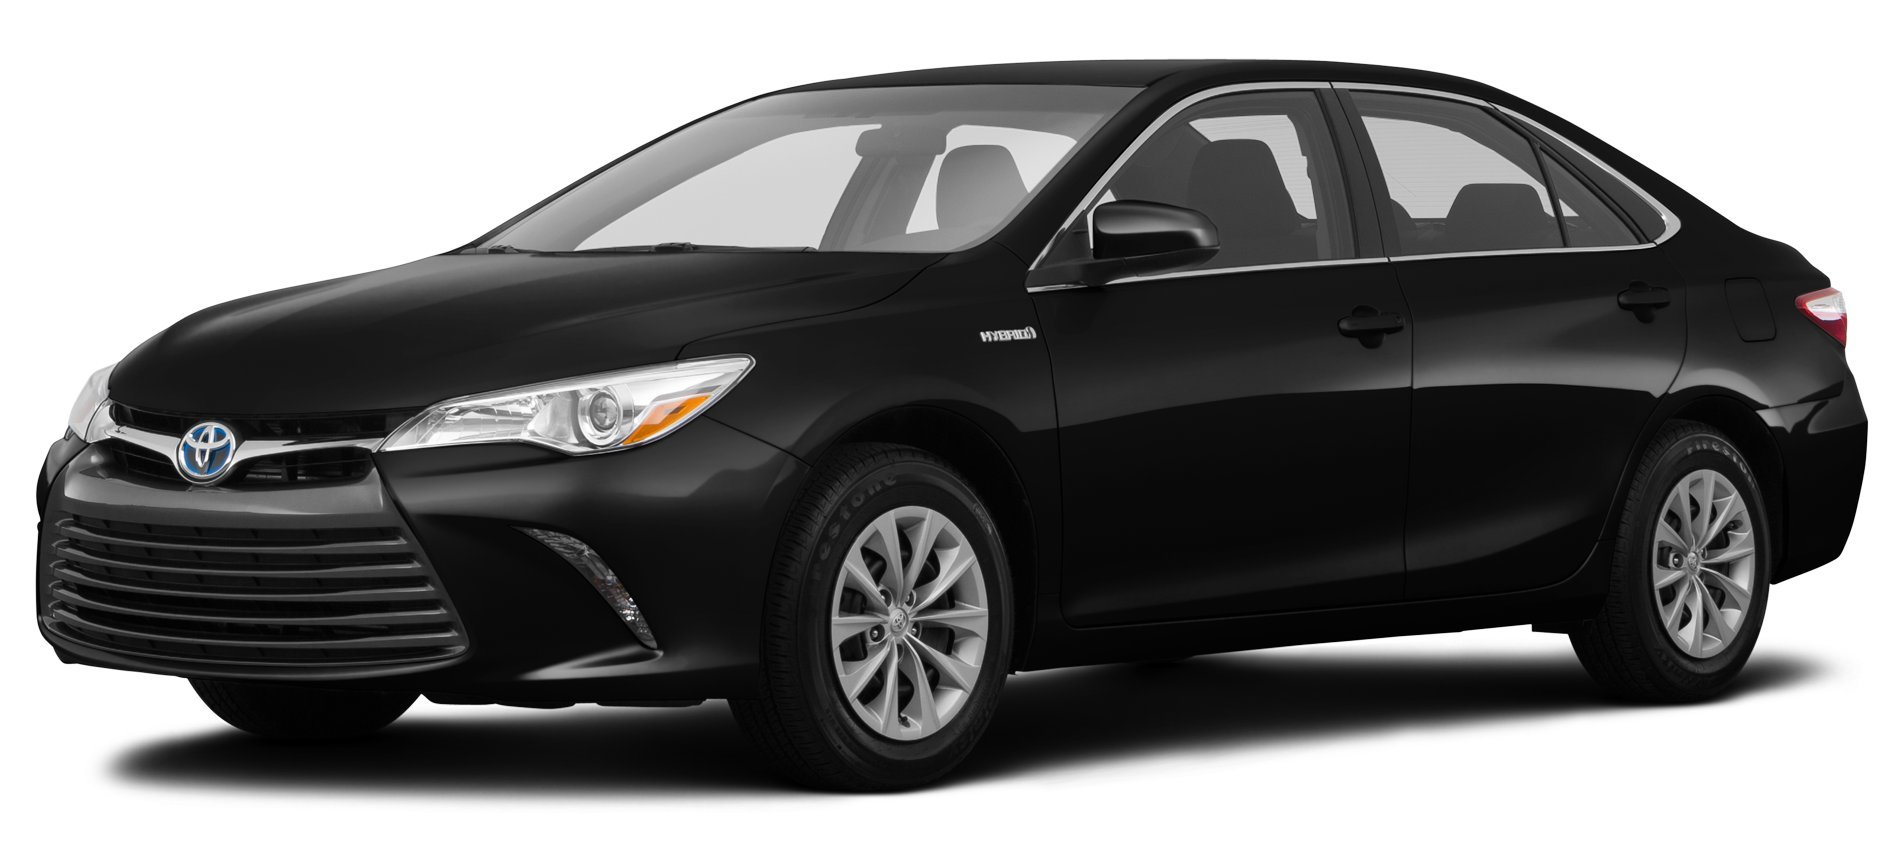 in camry cars se los toyota sale angeles used for